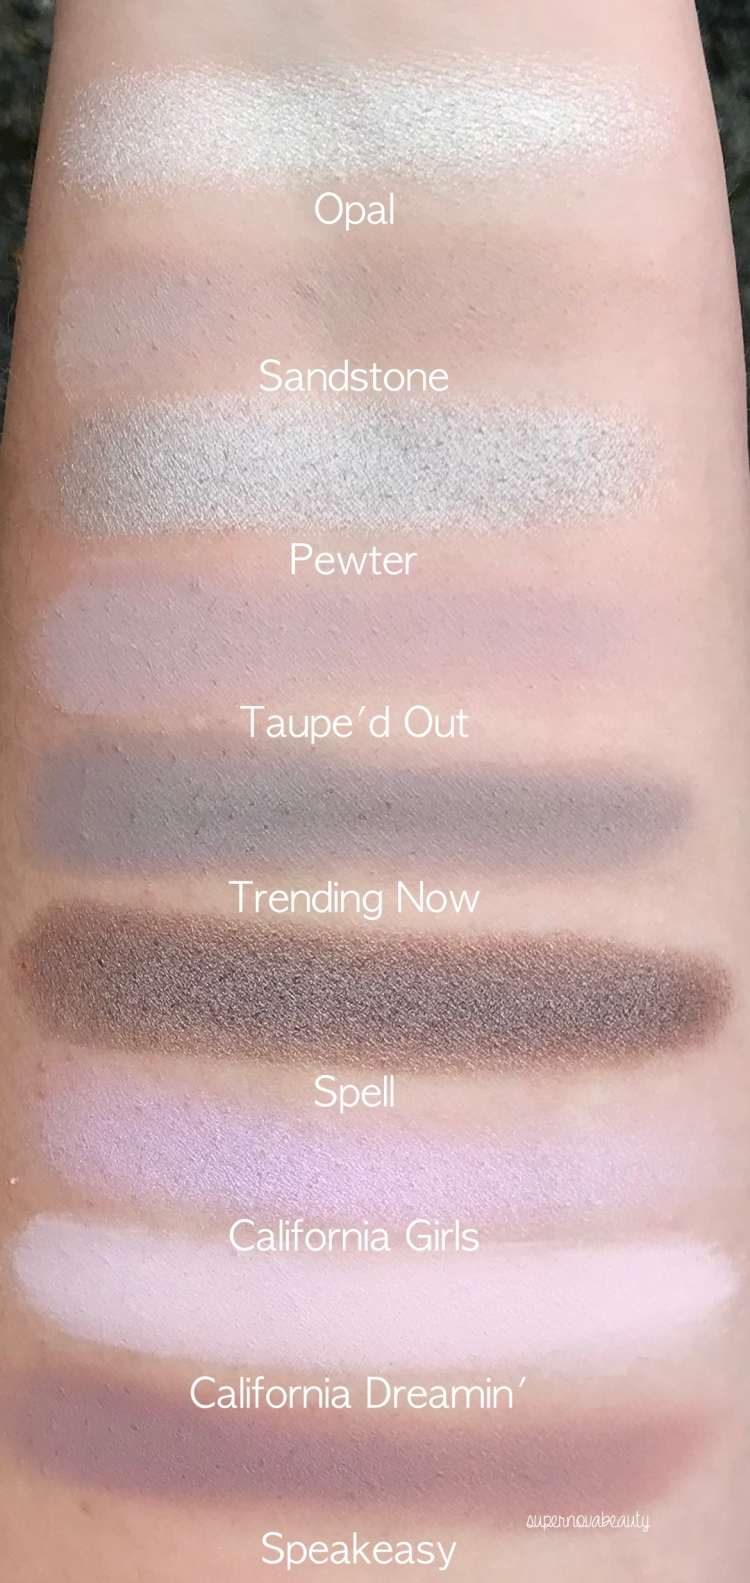 stilazzi swatches 1